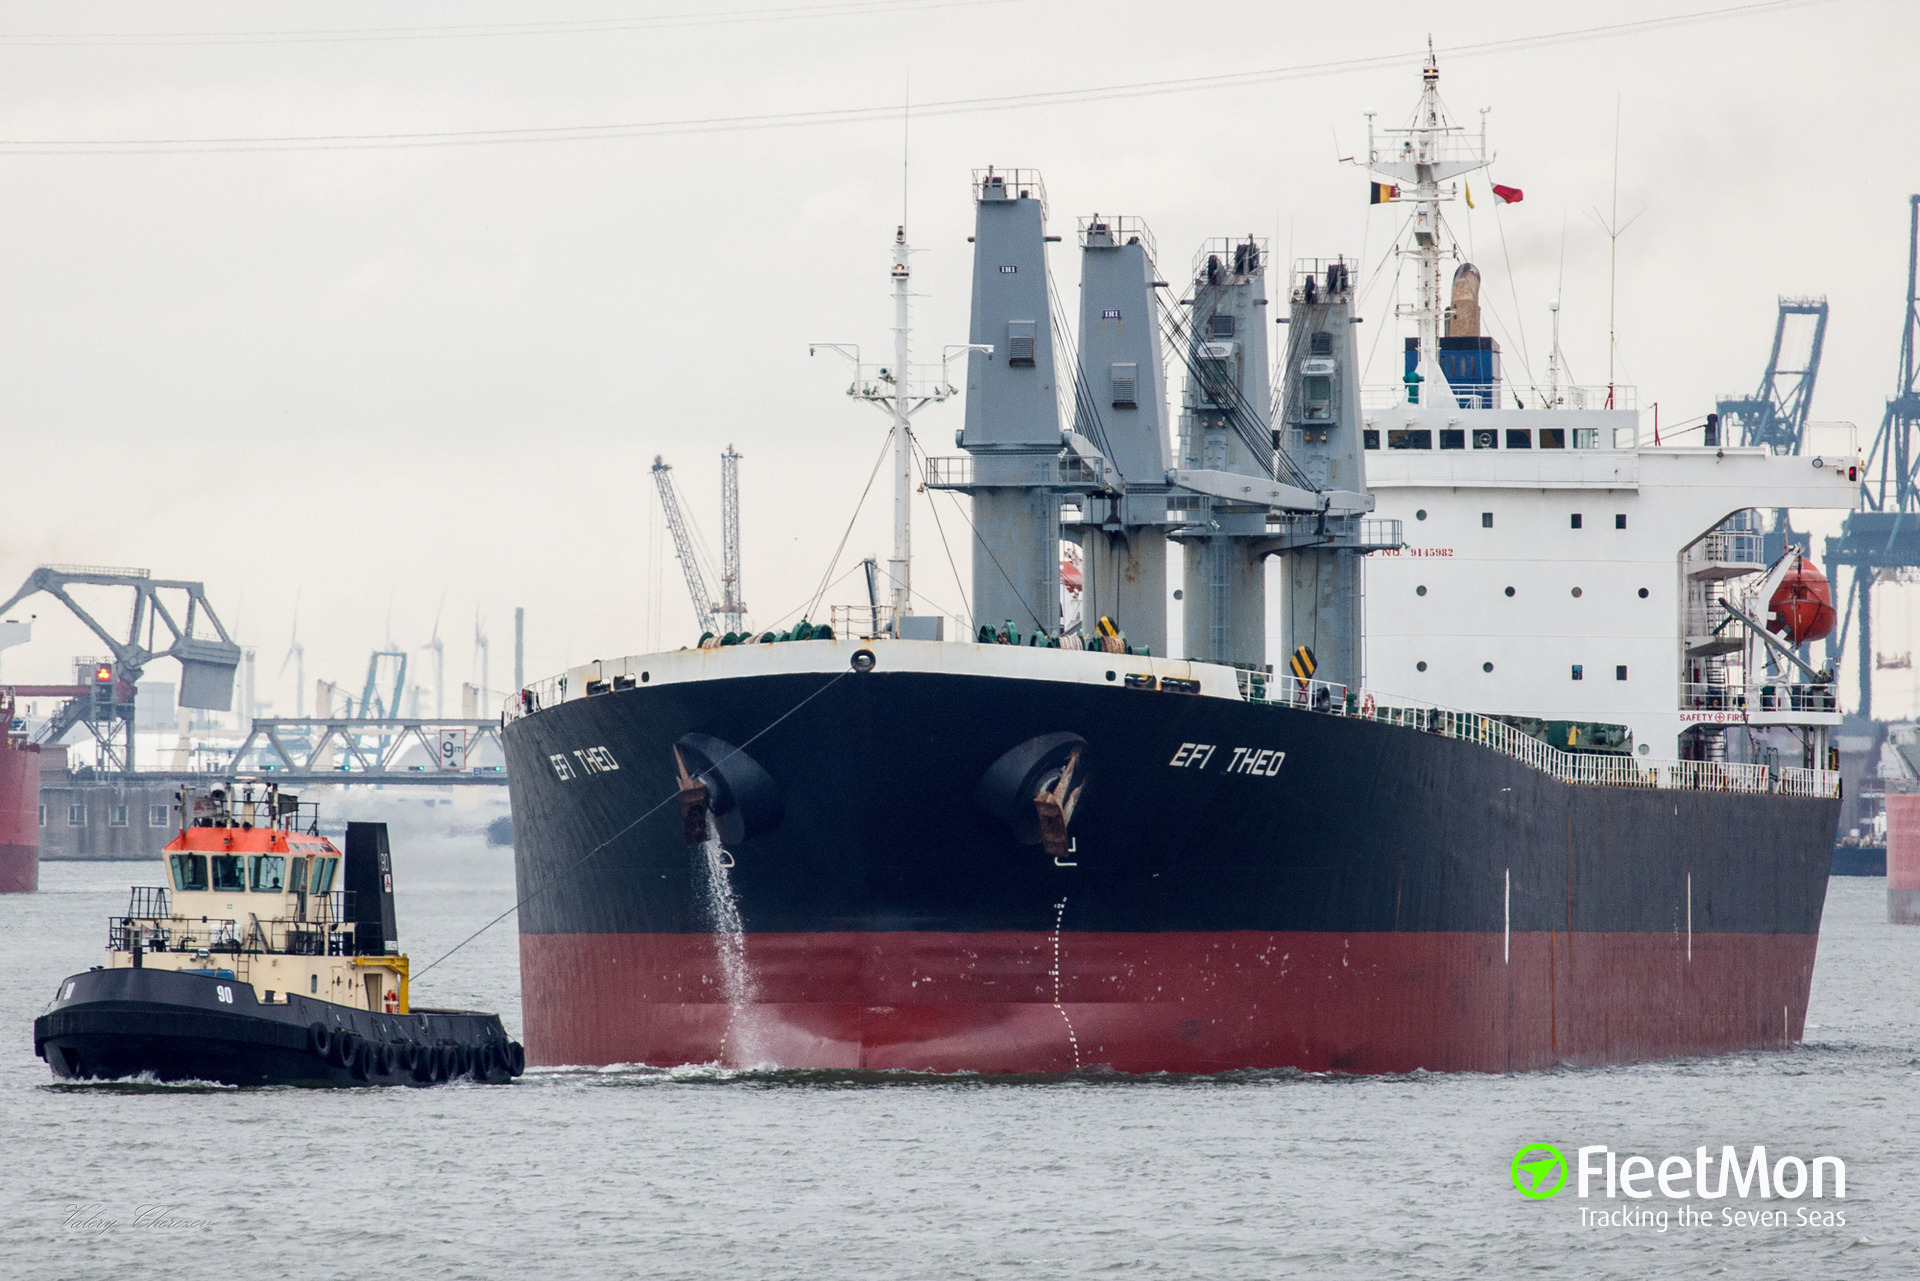 Bulk carrier EFI Theo grounded after engine failure, Baltic sea